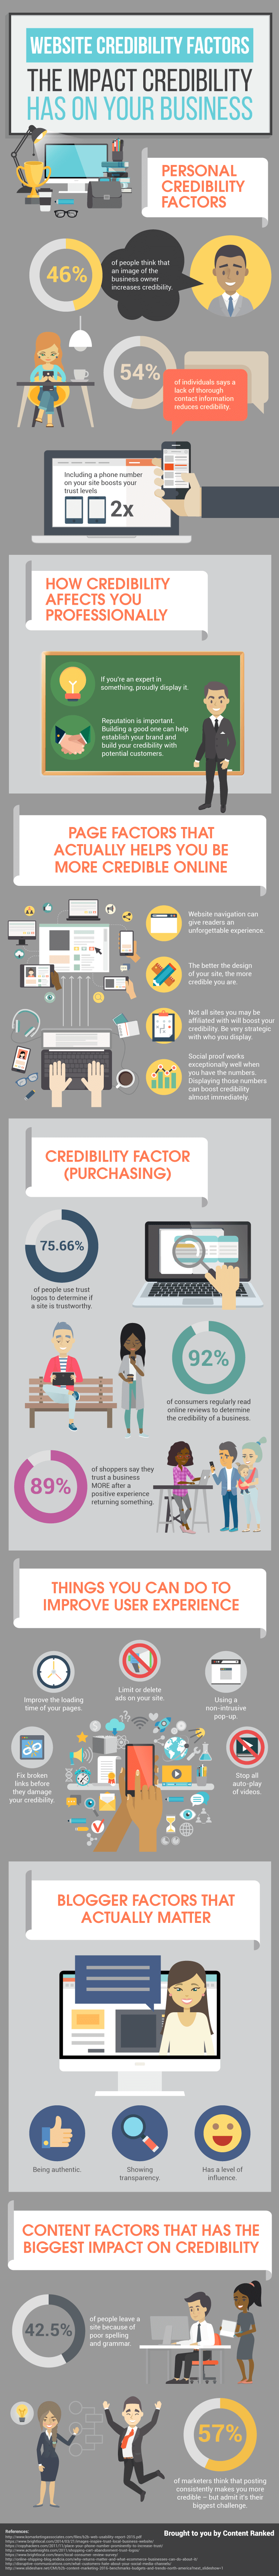 Website Credibility Factors: 53 Tips To Improve Your Influence Today